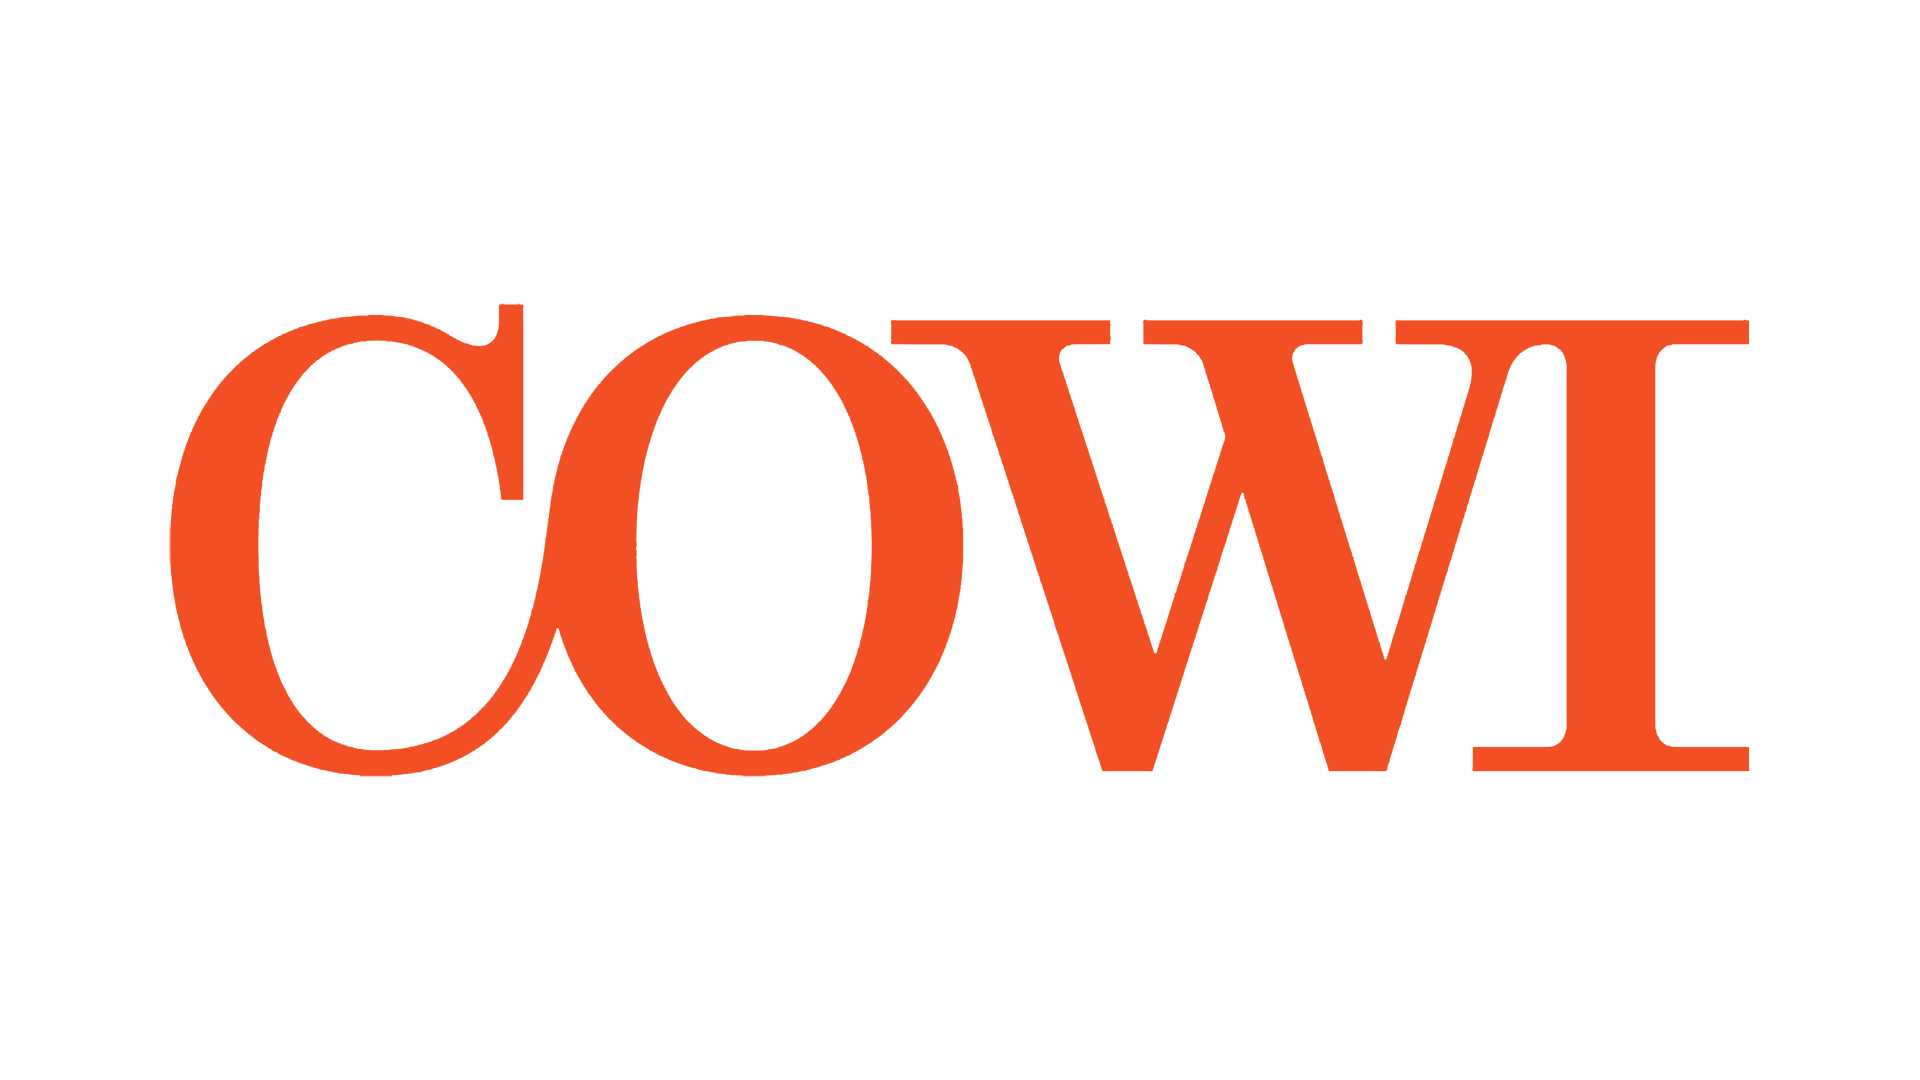 Cowi